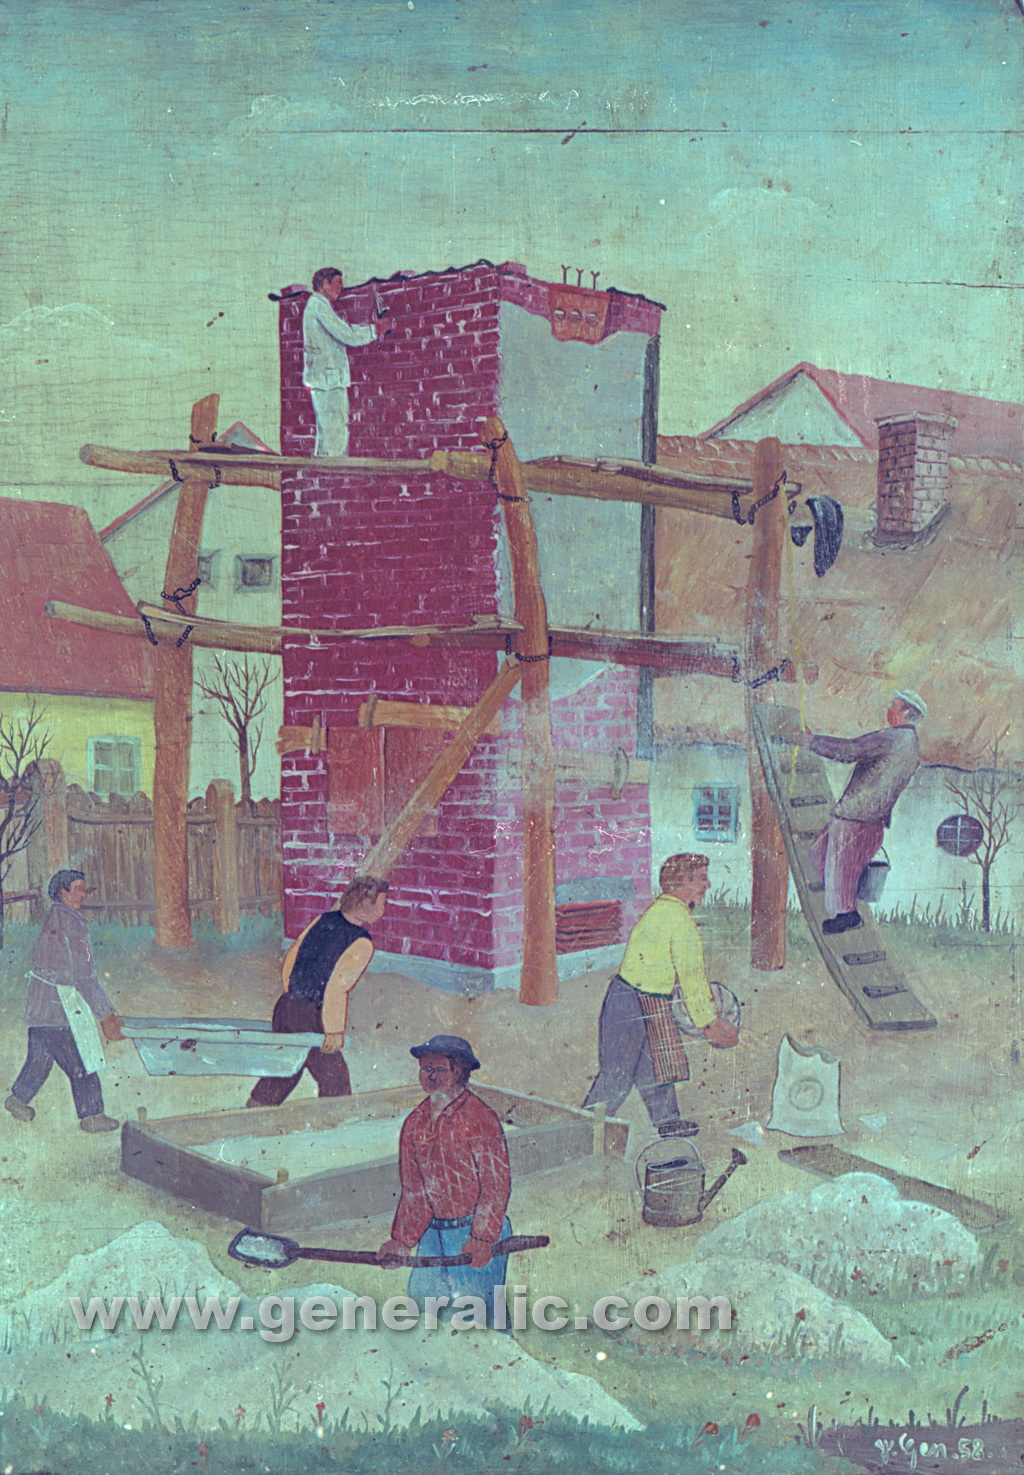 Josip Generalic, 1958, Building a house, oil on wood